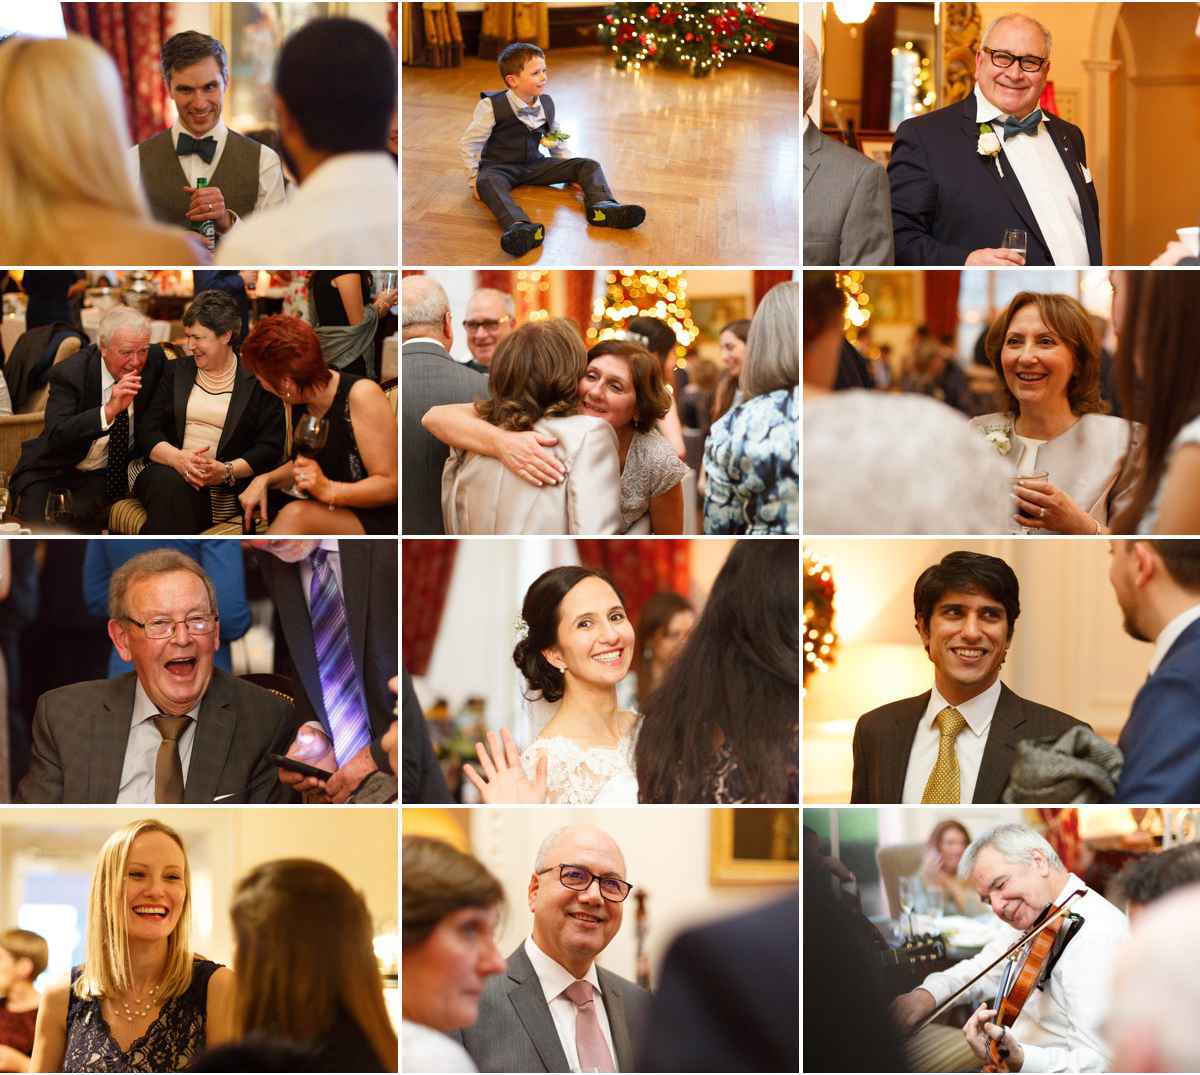 candid photographs of guests at Castlemartyr wedding